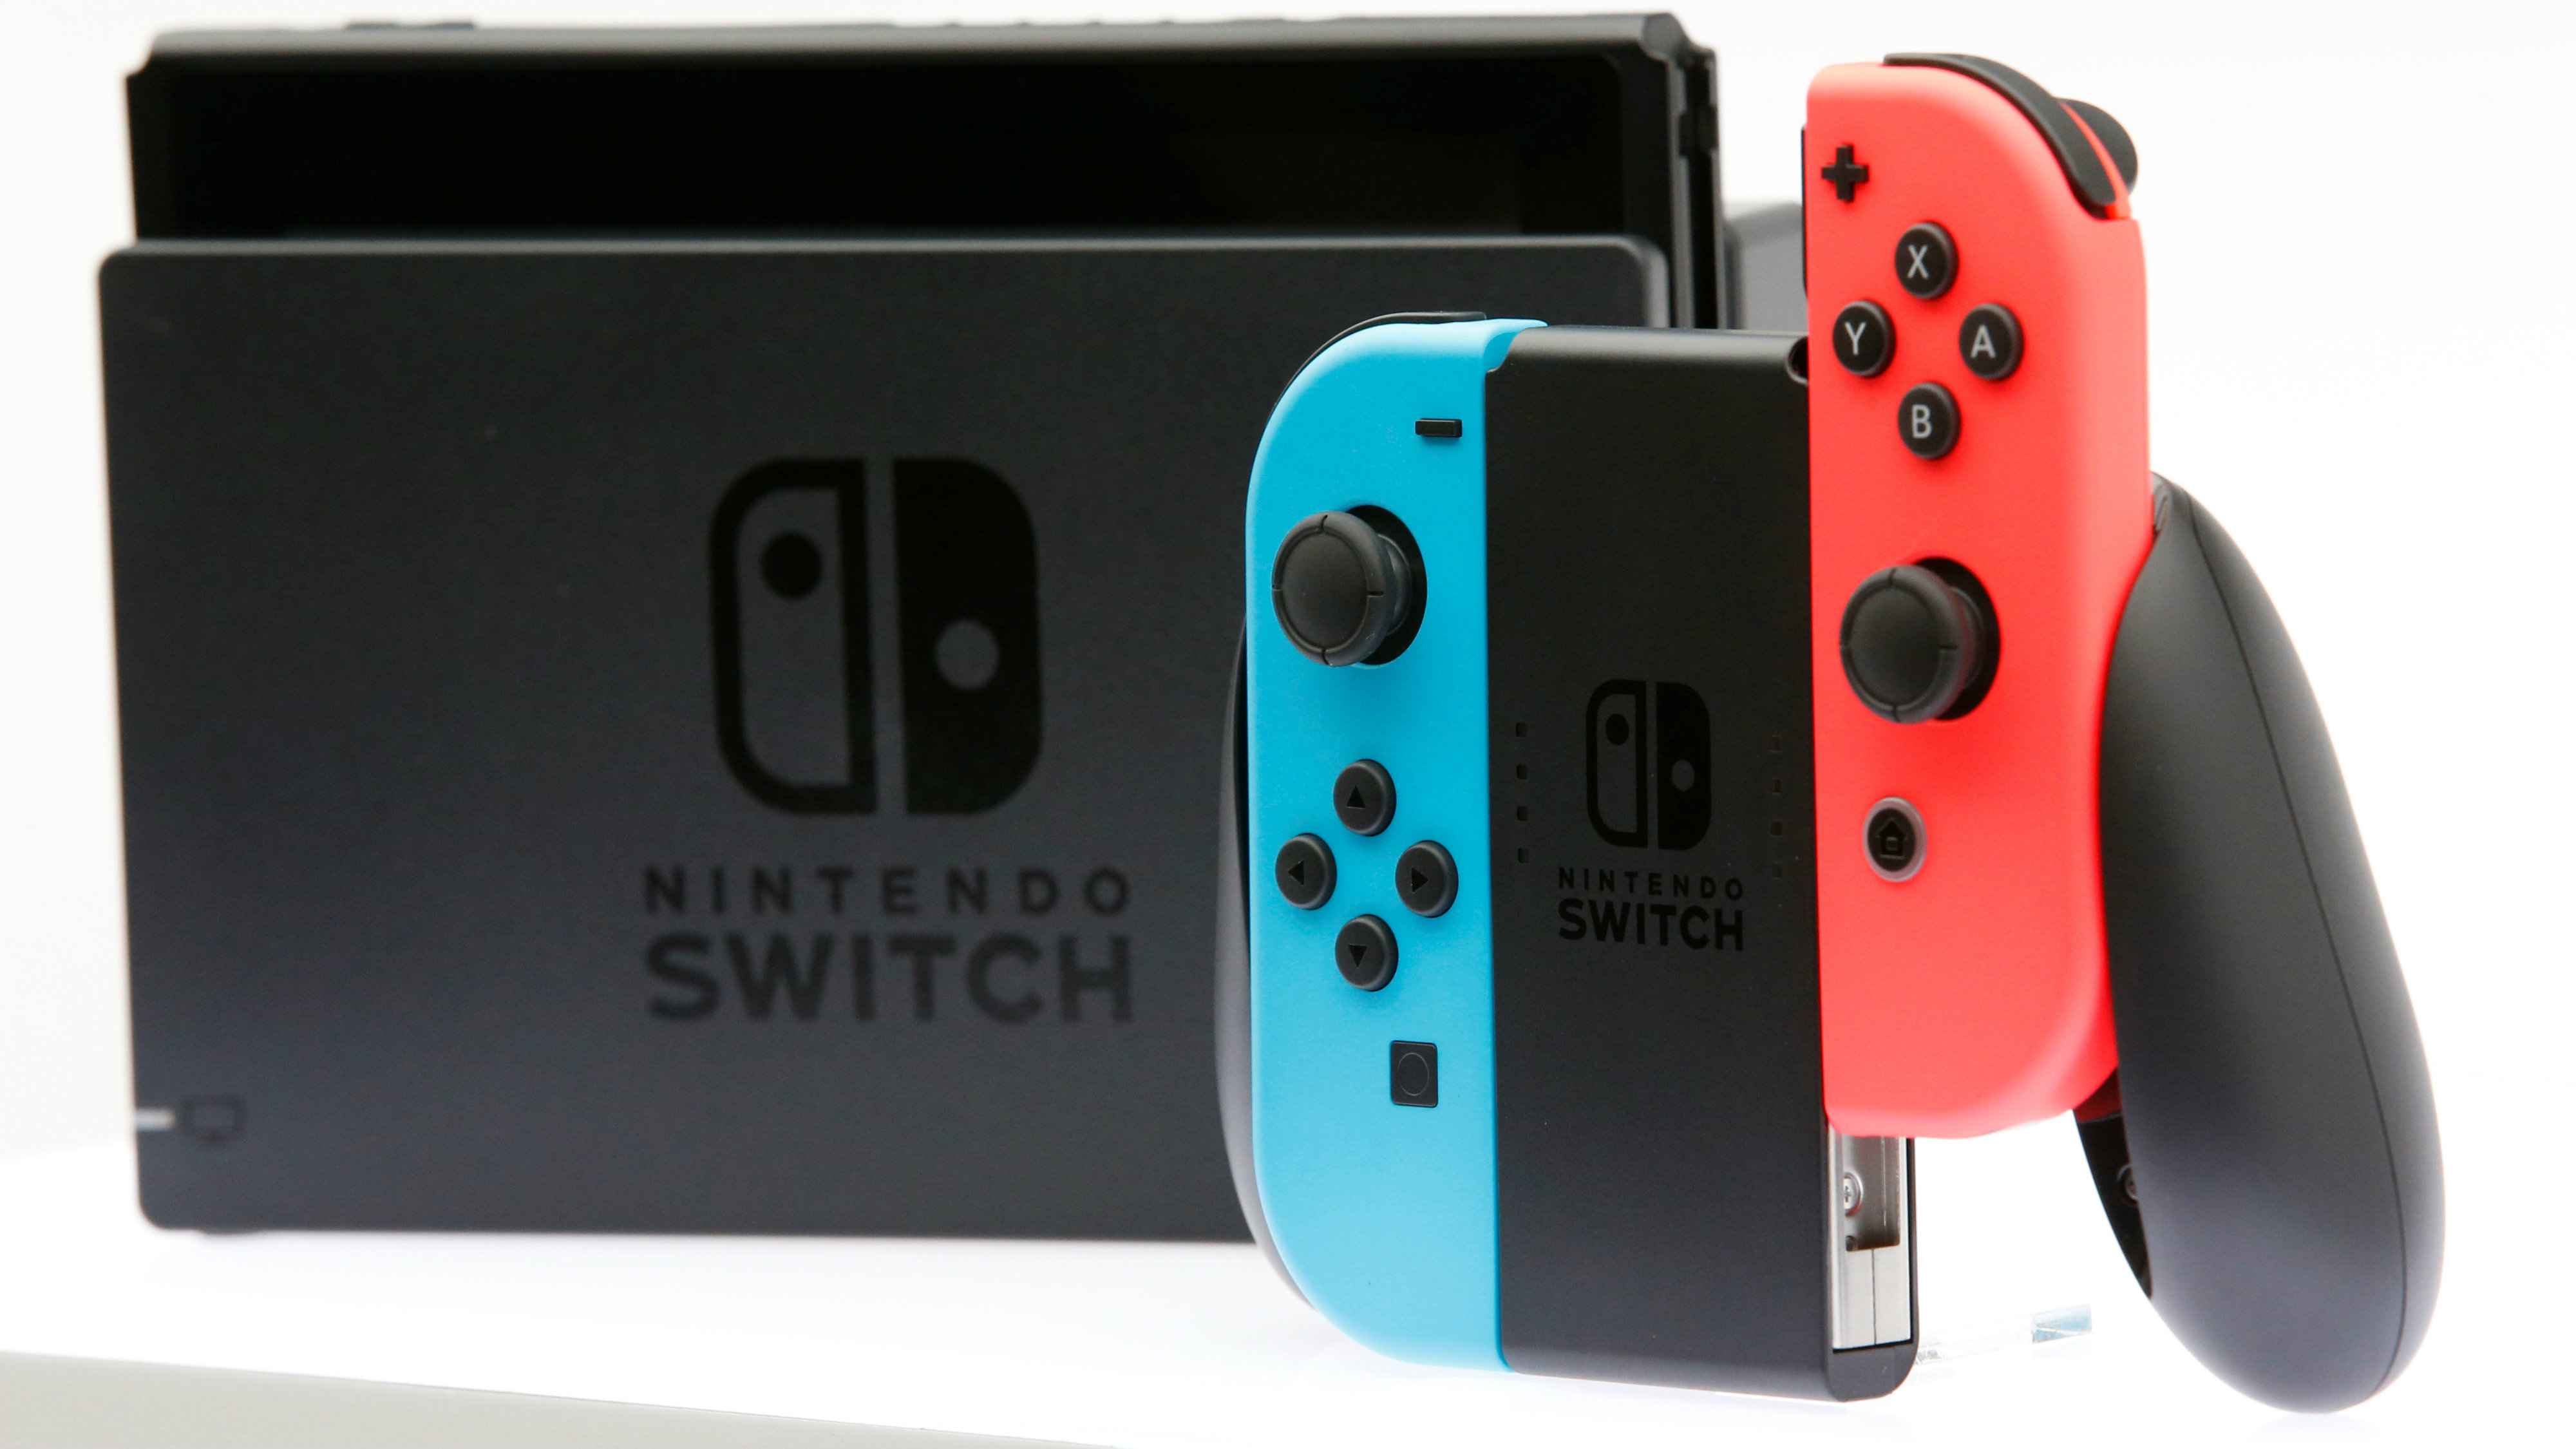 Nintendo's new game console Switch is pictured after its presentation ceremony in Tokyo, Japan